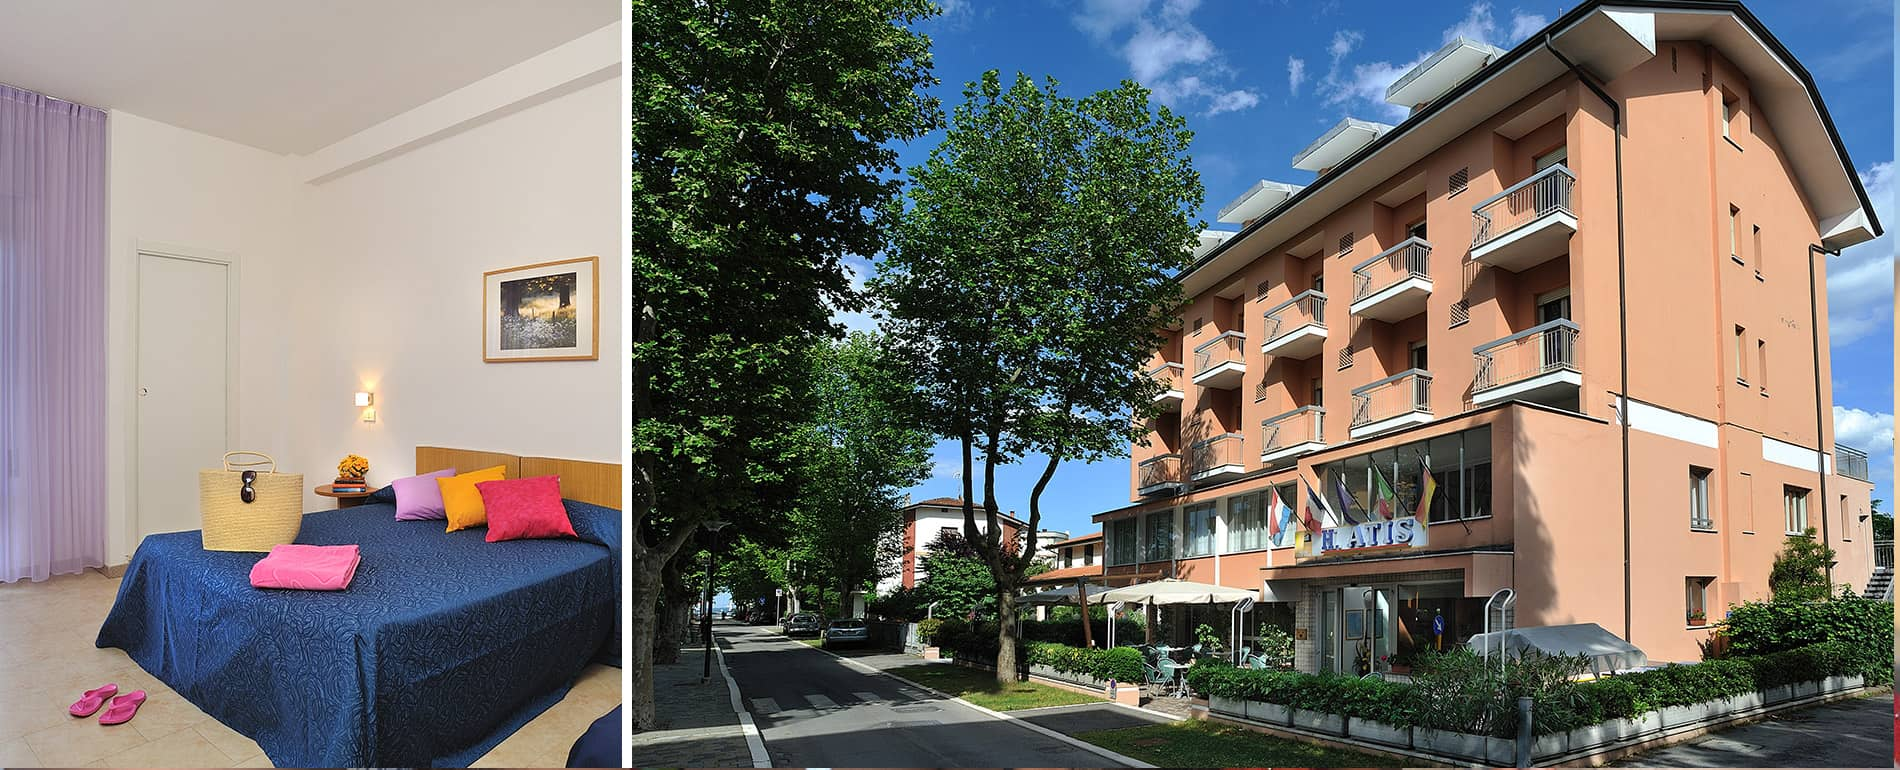 Hotel Caminetto Folgarida Booking Caminetto Bellaria